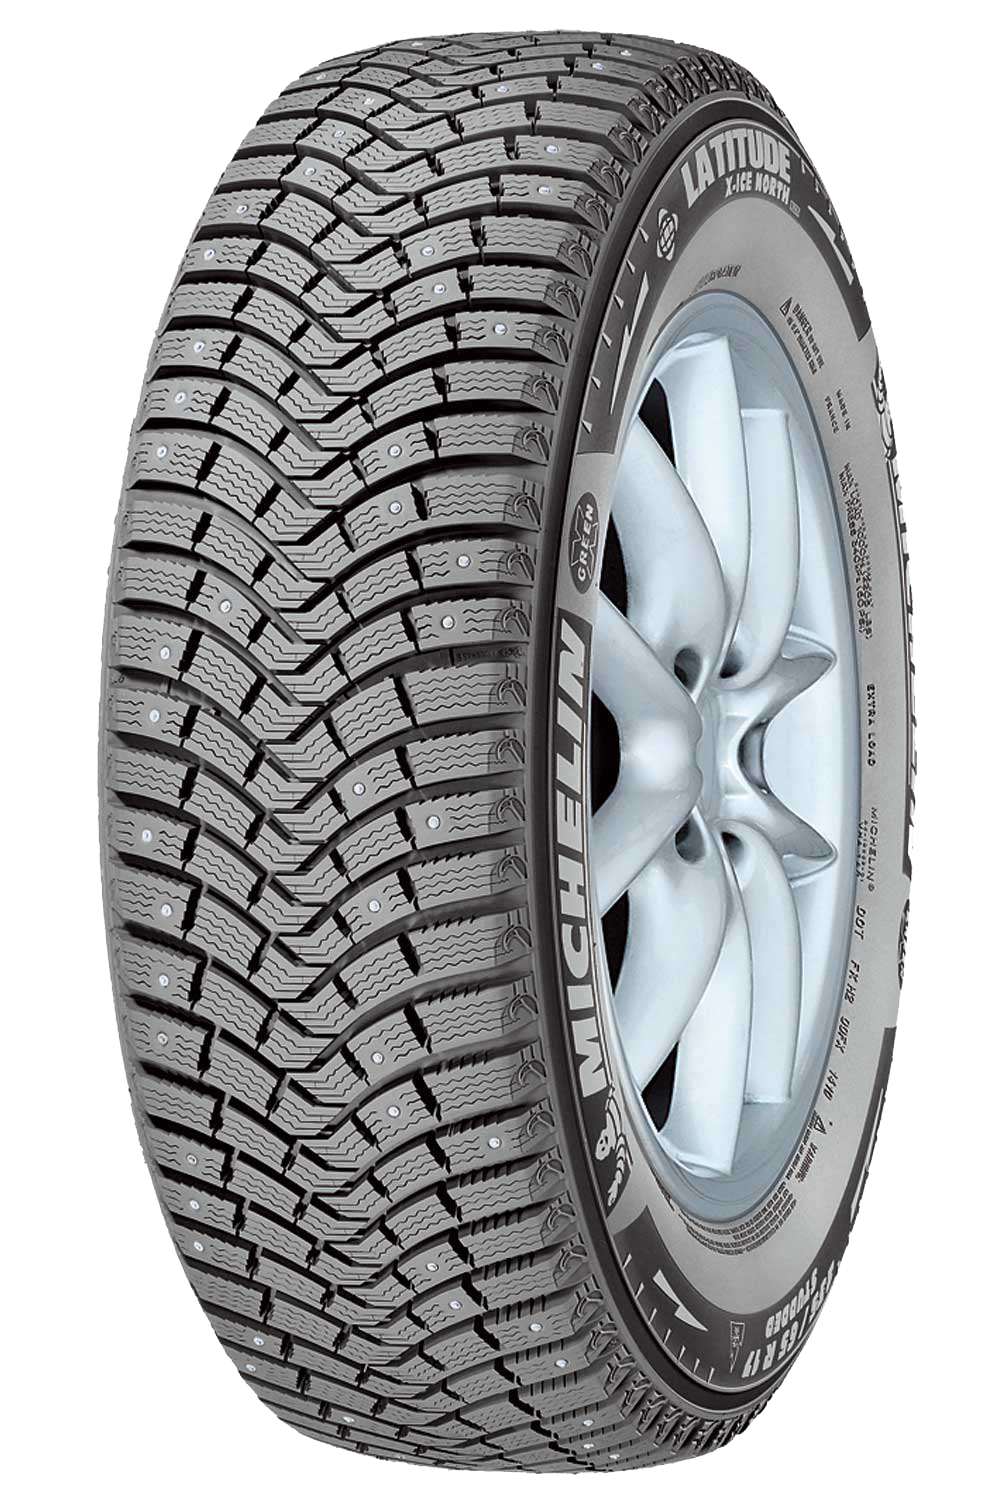 Зимняя шипованная шина Michelin Latitude X-Ice North XIN2 plus 255/45 R20 105T